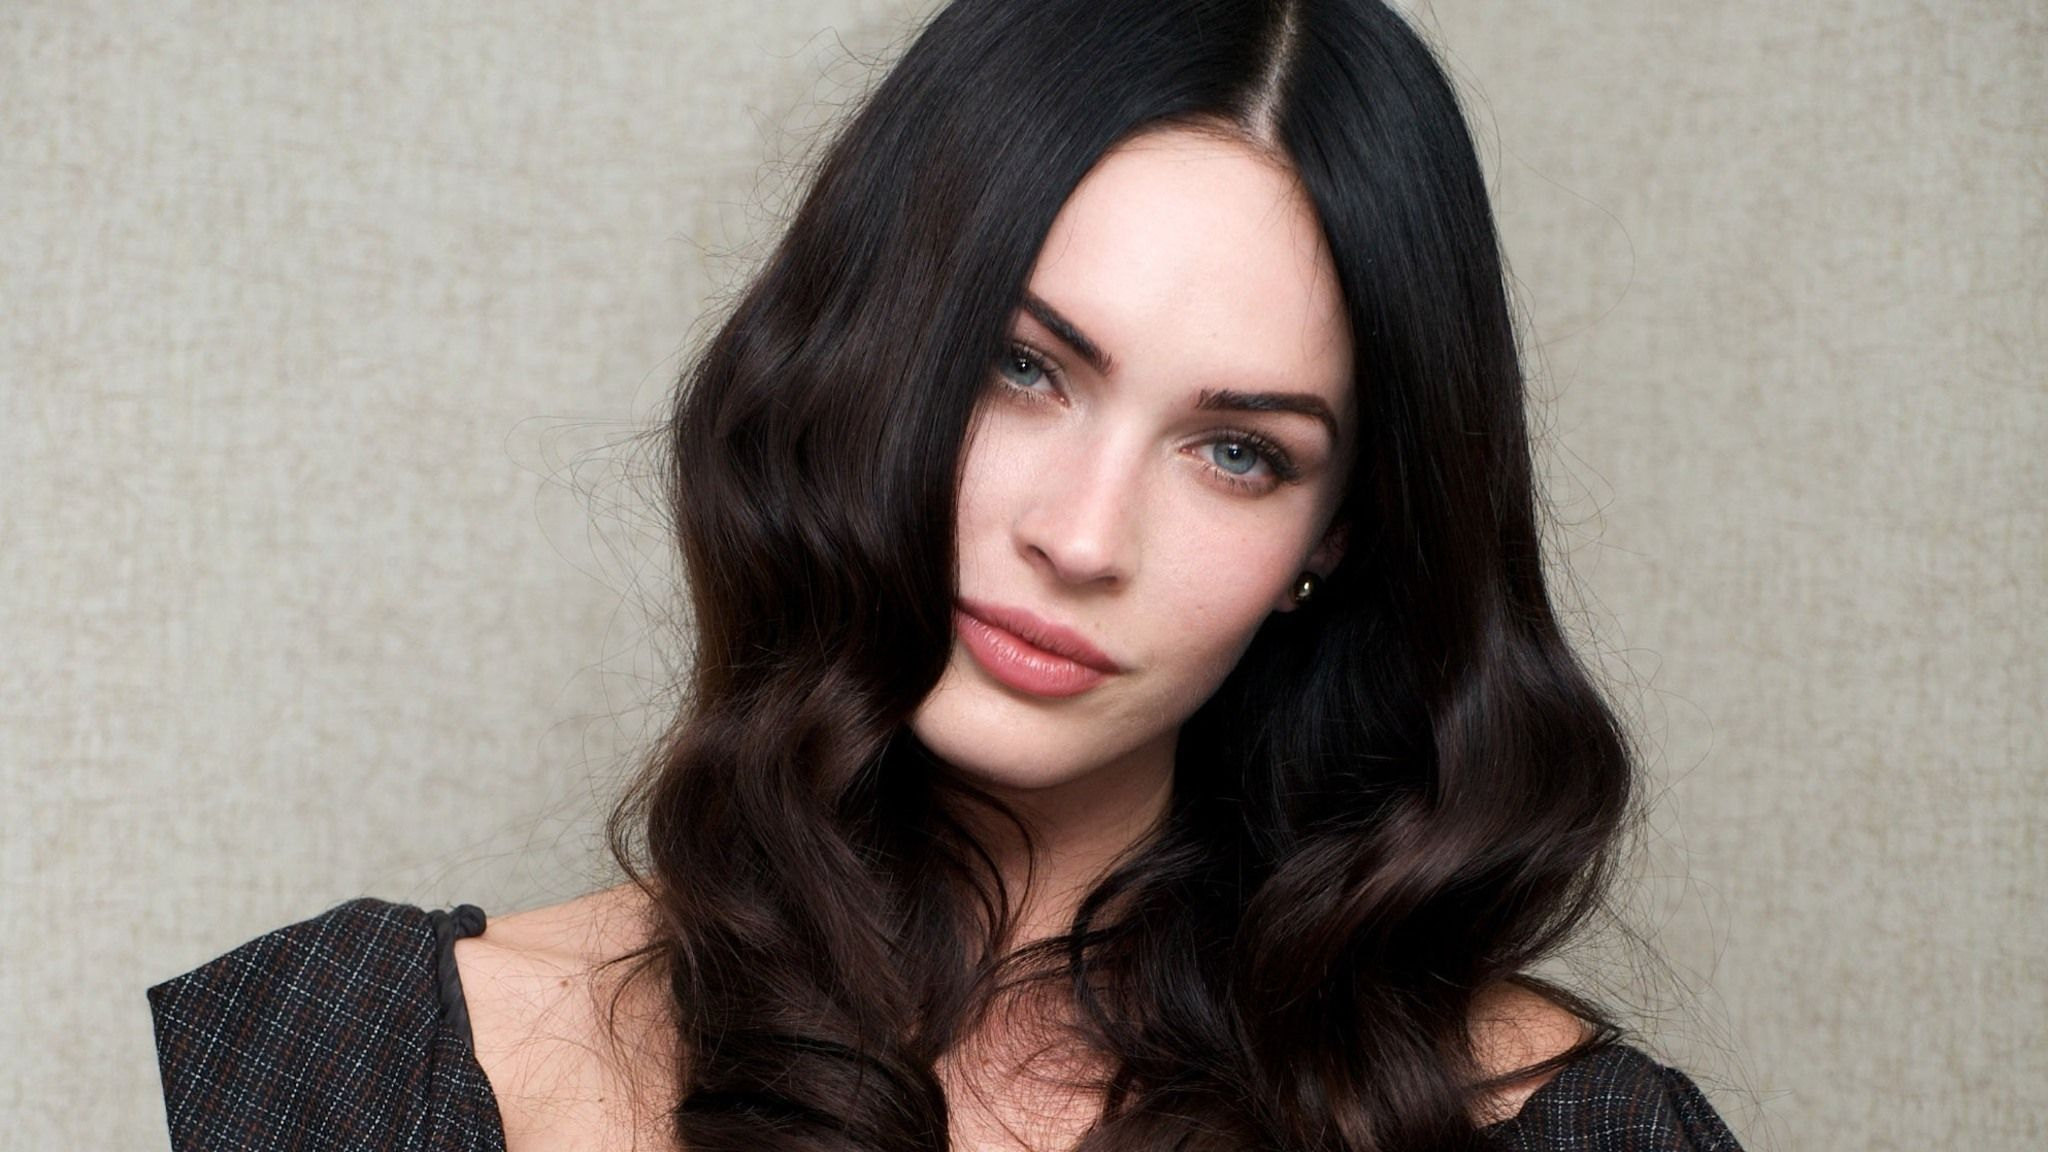 Megan Fox Celebrity In X Resolution In